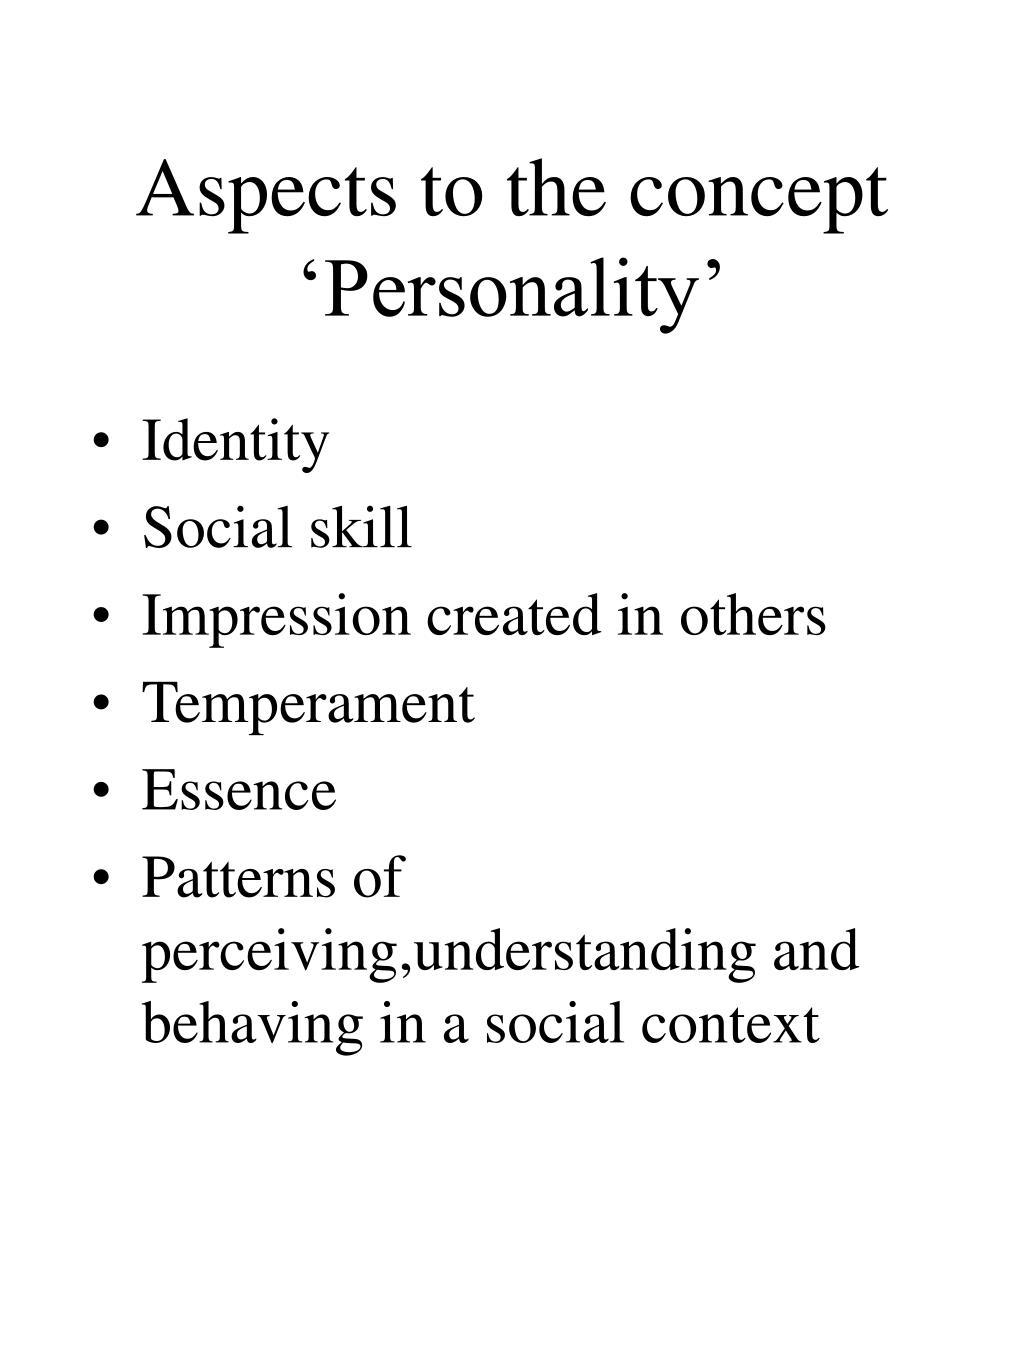 Aspects to the concept 'Personality'